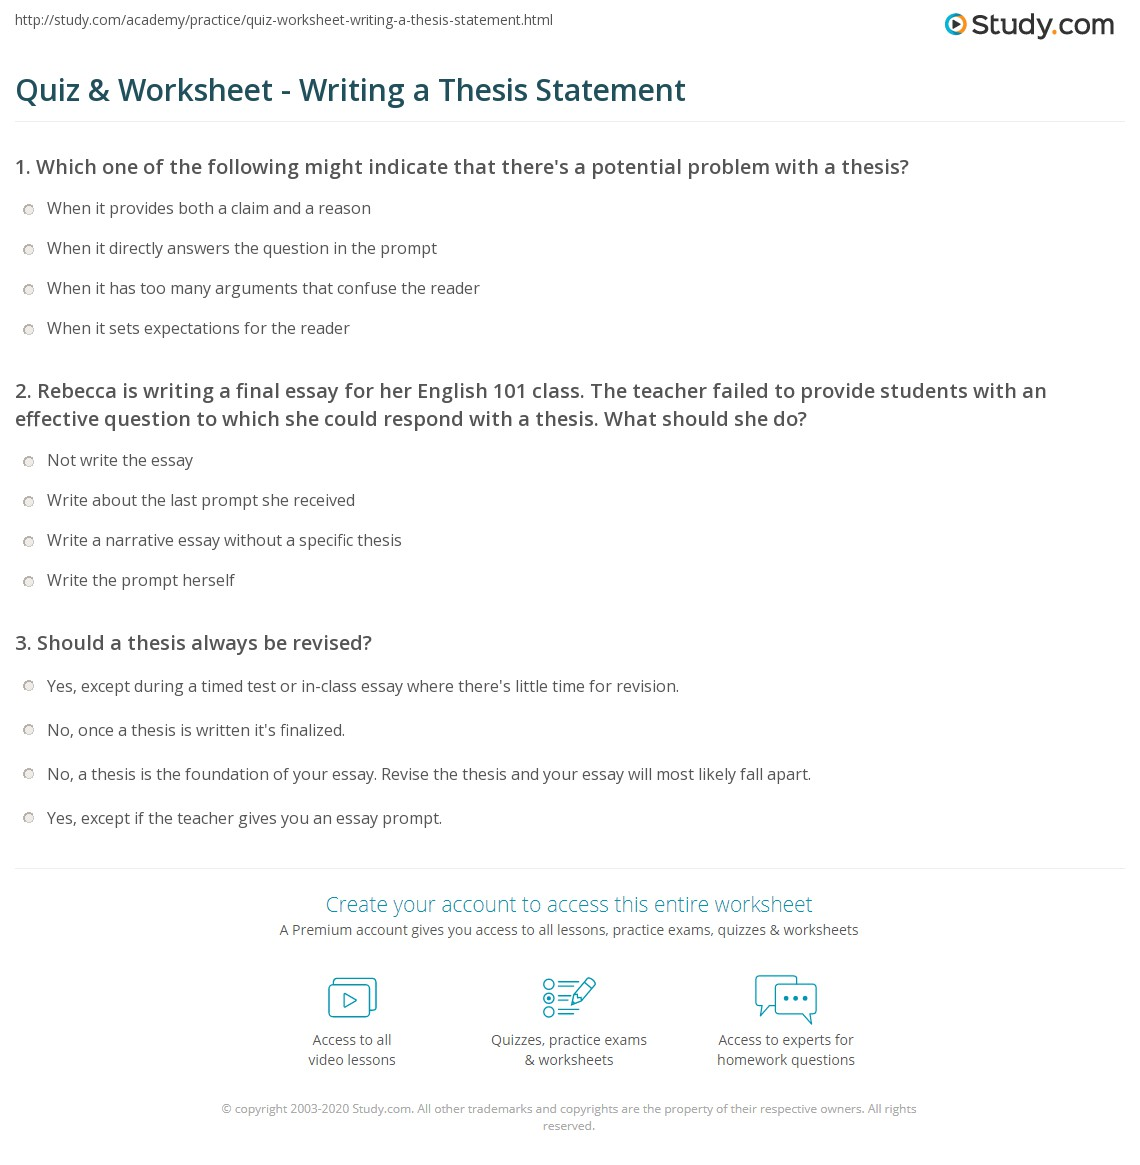 quiz  worksheet  writing a thesis statement  studycom  essay for her english  class the teacher failed to provide students  with an effective question to which she could respond with a thesis what  should